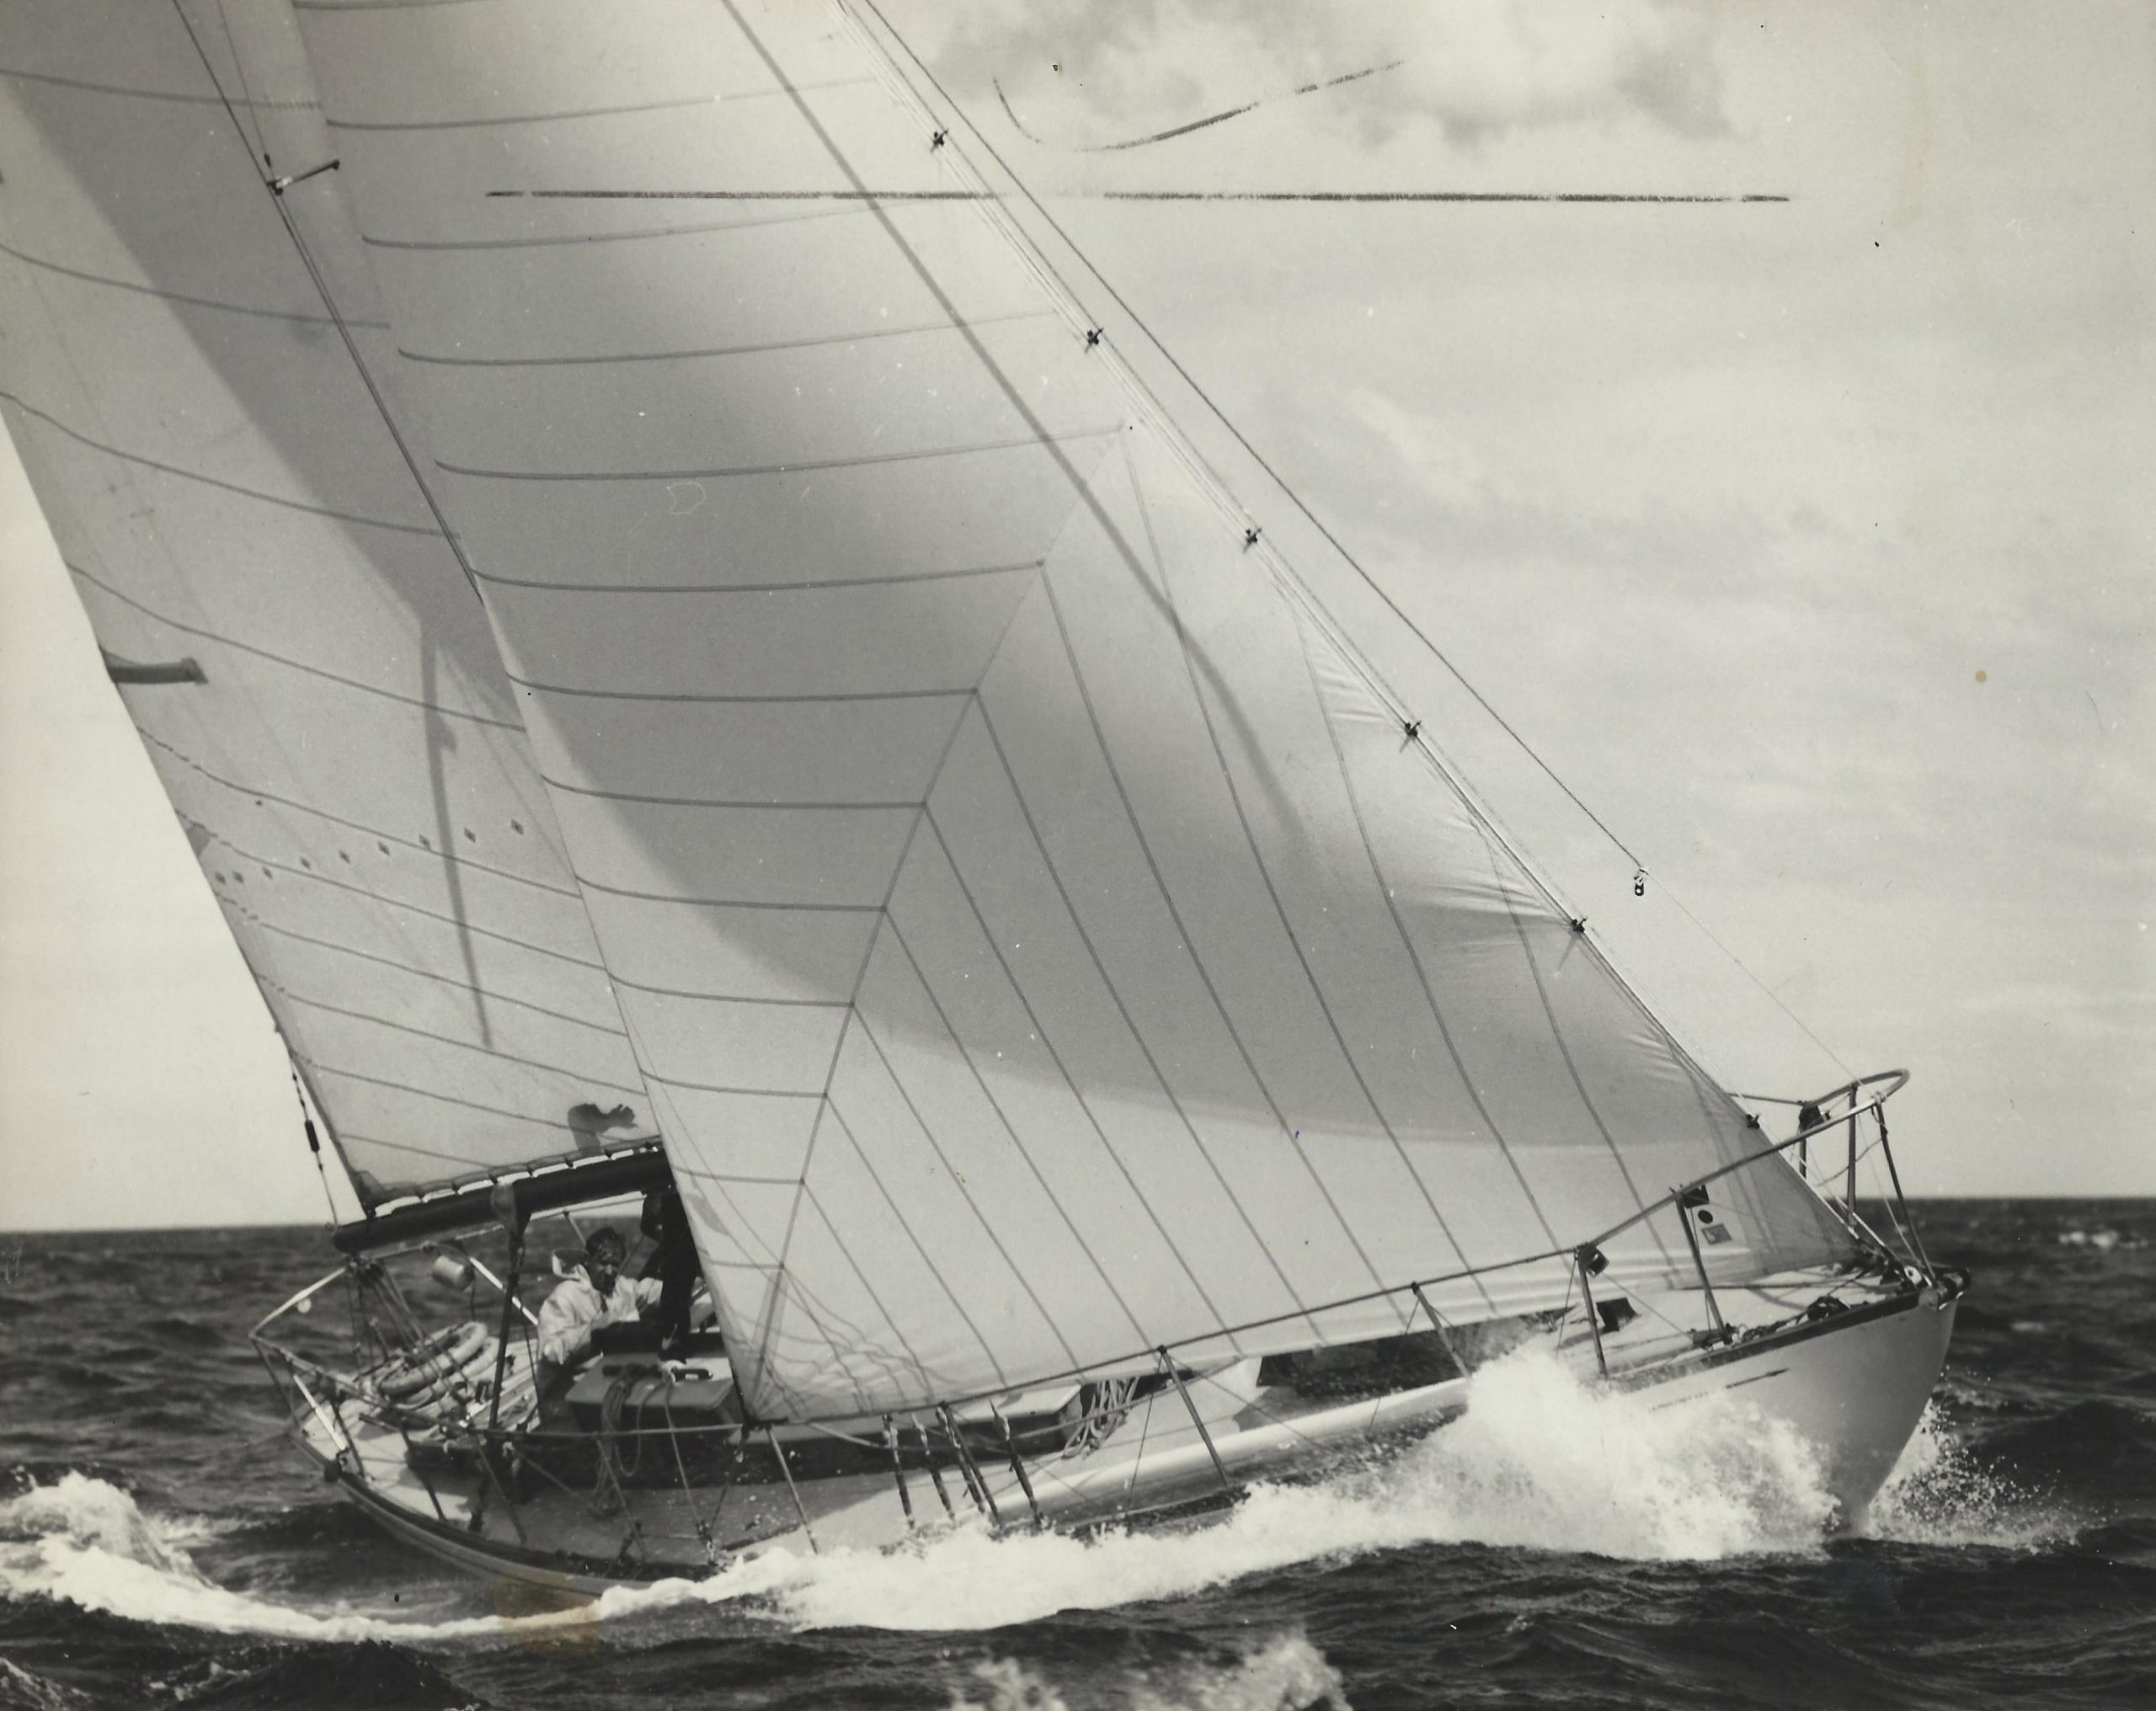 Caprice of Huon at the 67 Admirals Cup - photographer unknown.